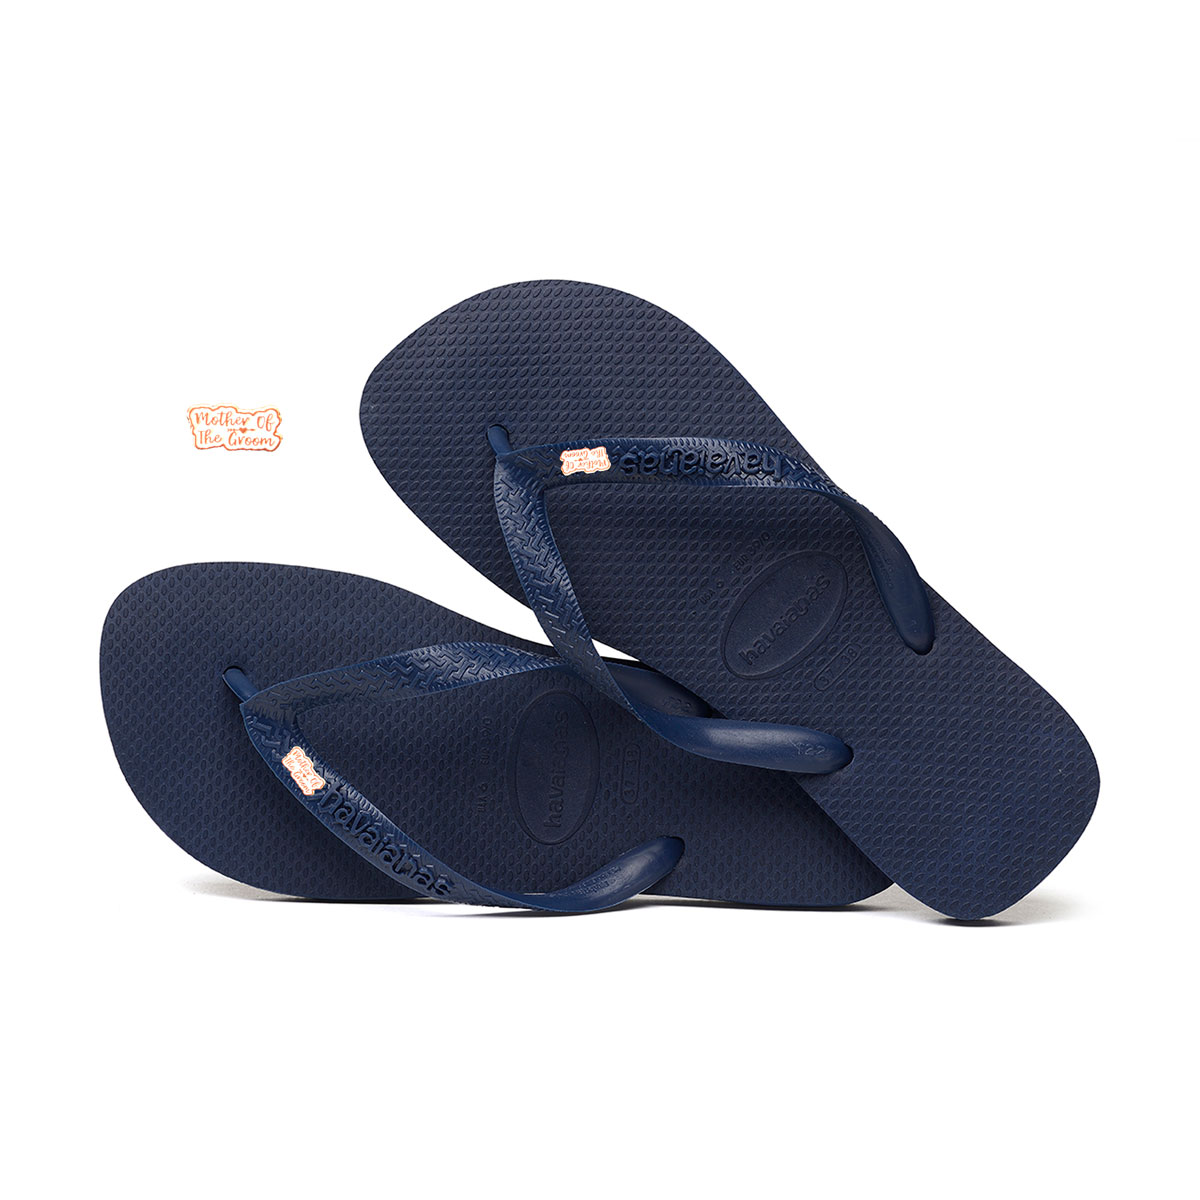 Rose Gold Mother of the Groom Charm Havaianas Top Navy Wedding Gift